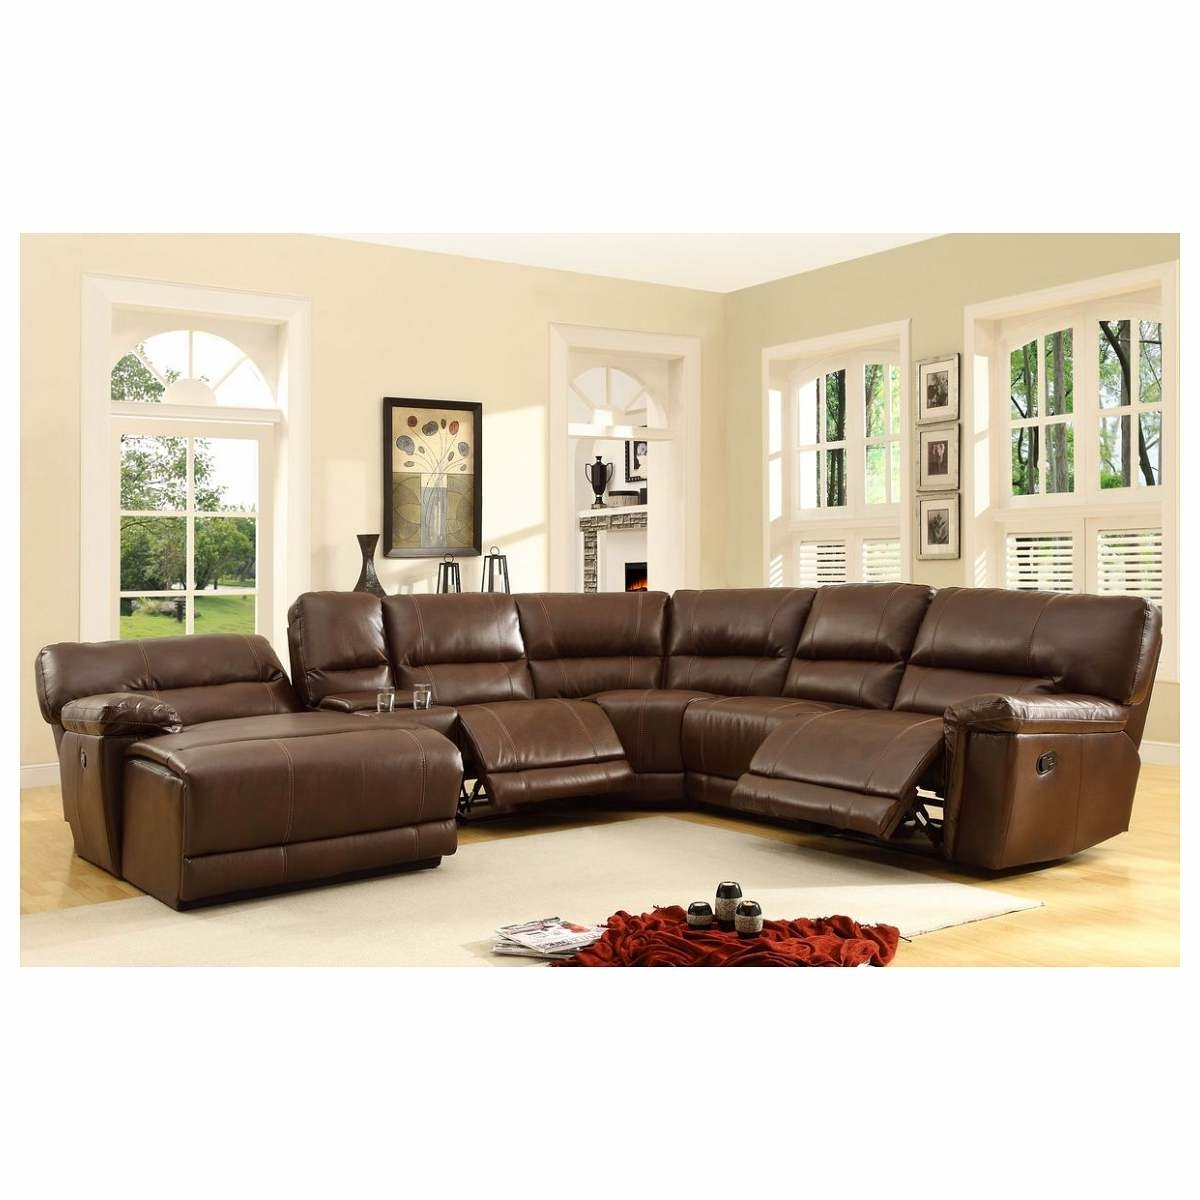 6 Pc Blythe Collection Brown Bonded Leather Match Upholstered Inside Most Popular Durham Region Sectional Sofas (Gallery 2 of 20)